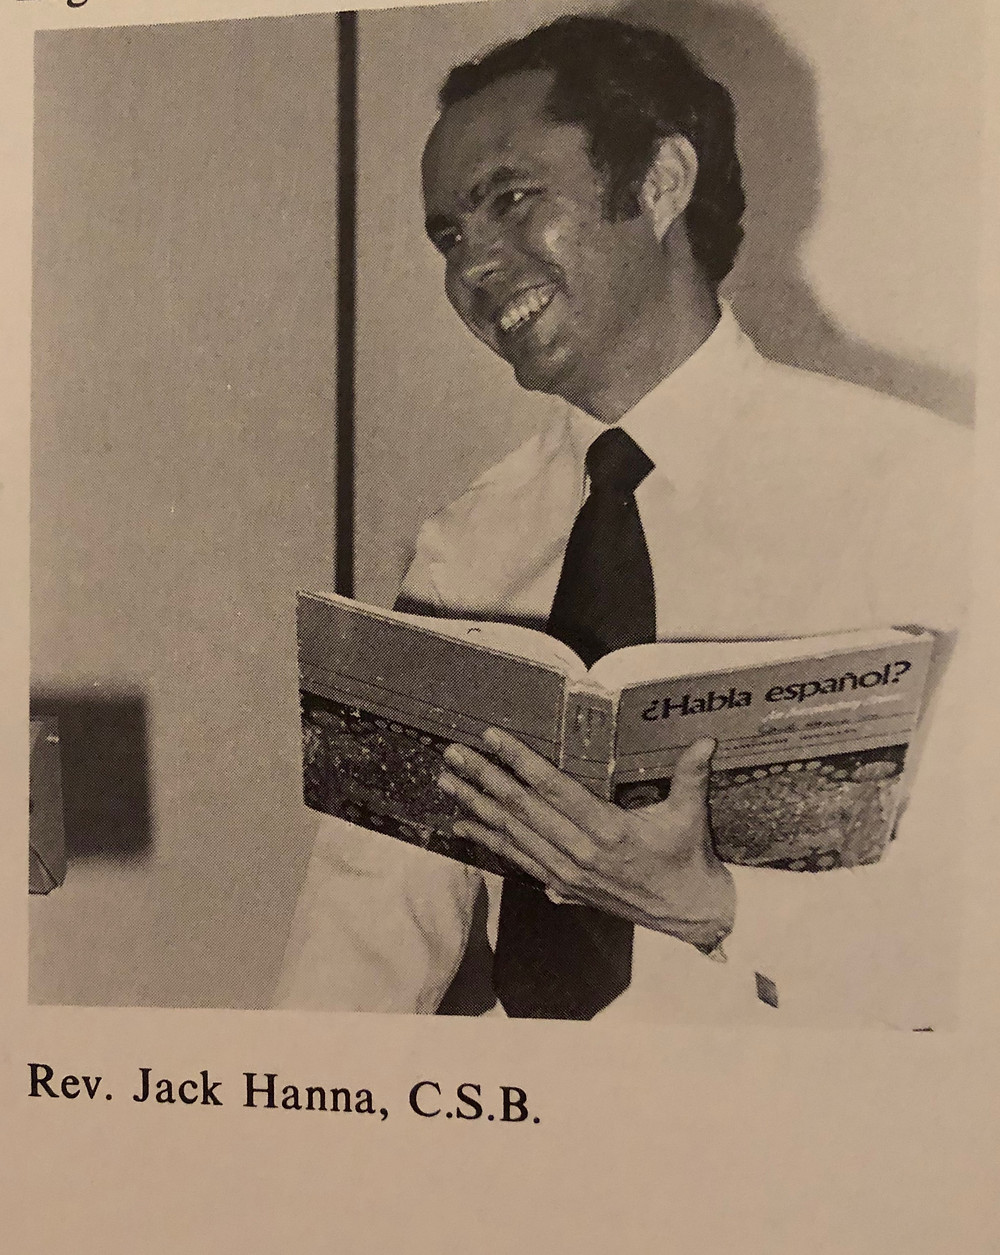 1979: Fr. Jack Hanna, University of St. Thomas yearbook, The Summa